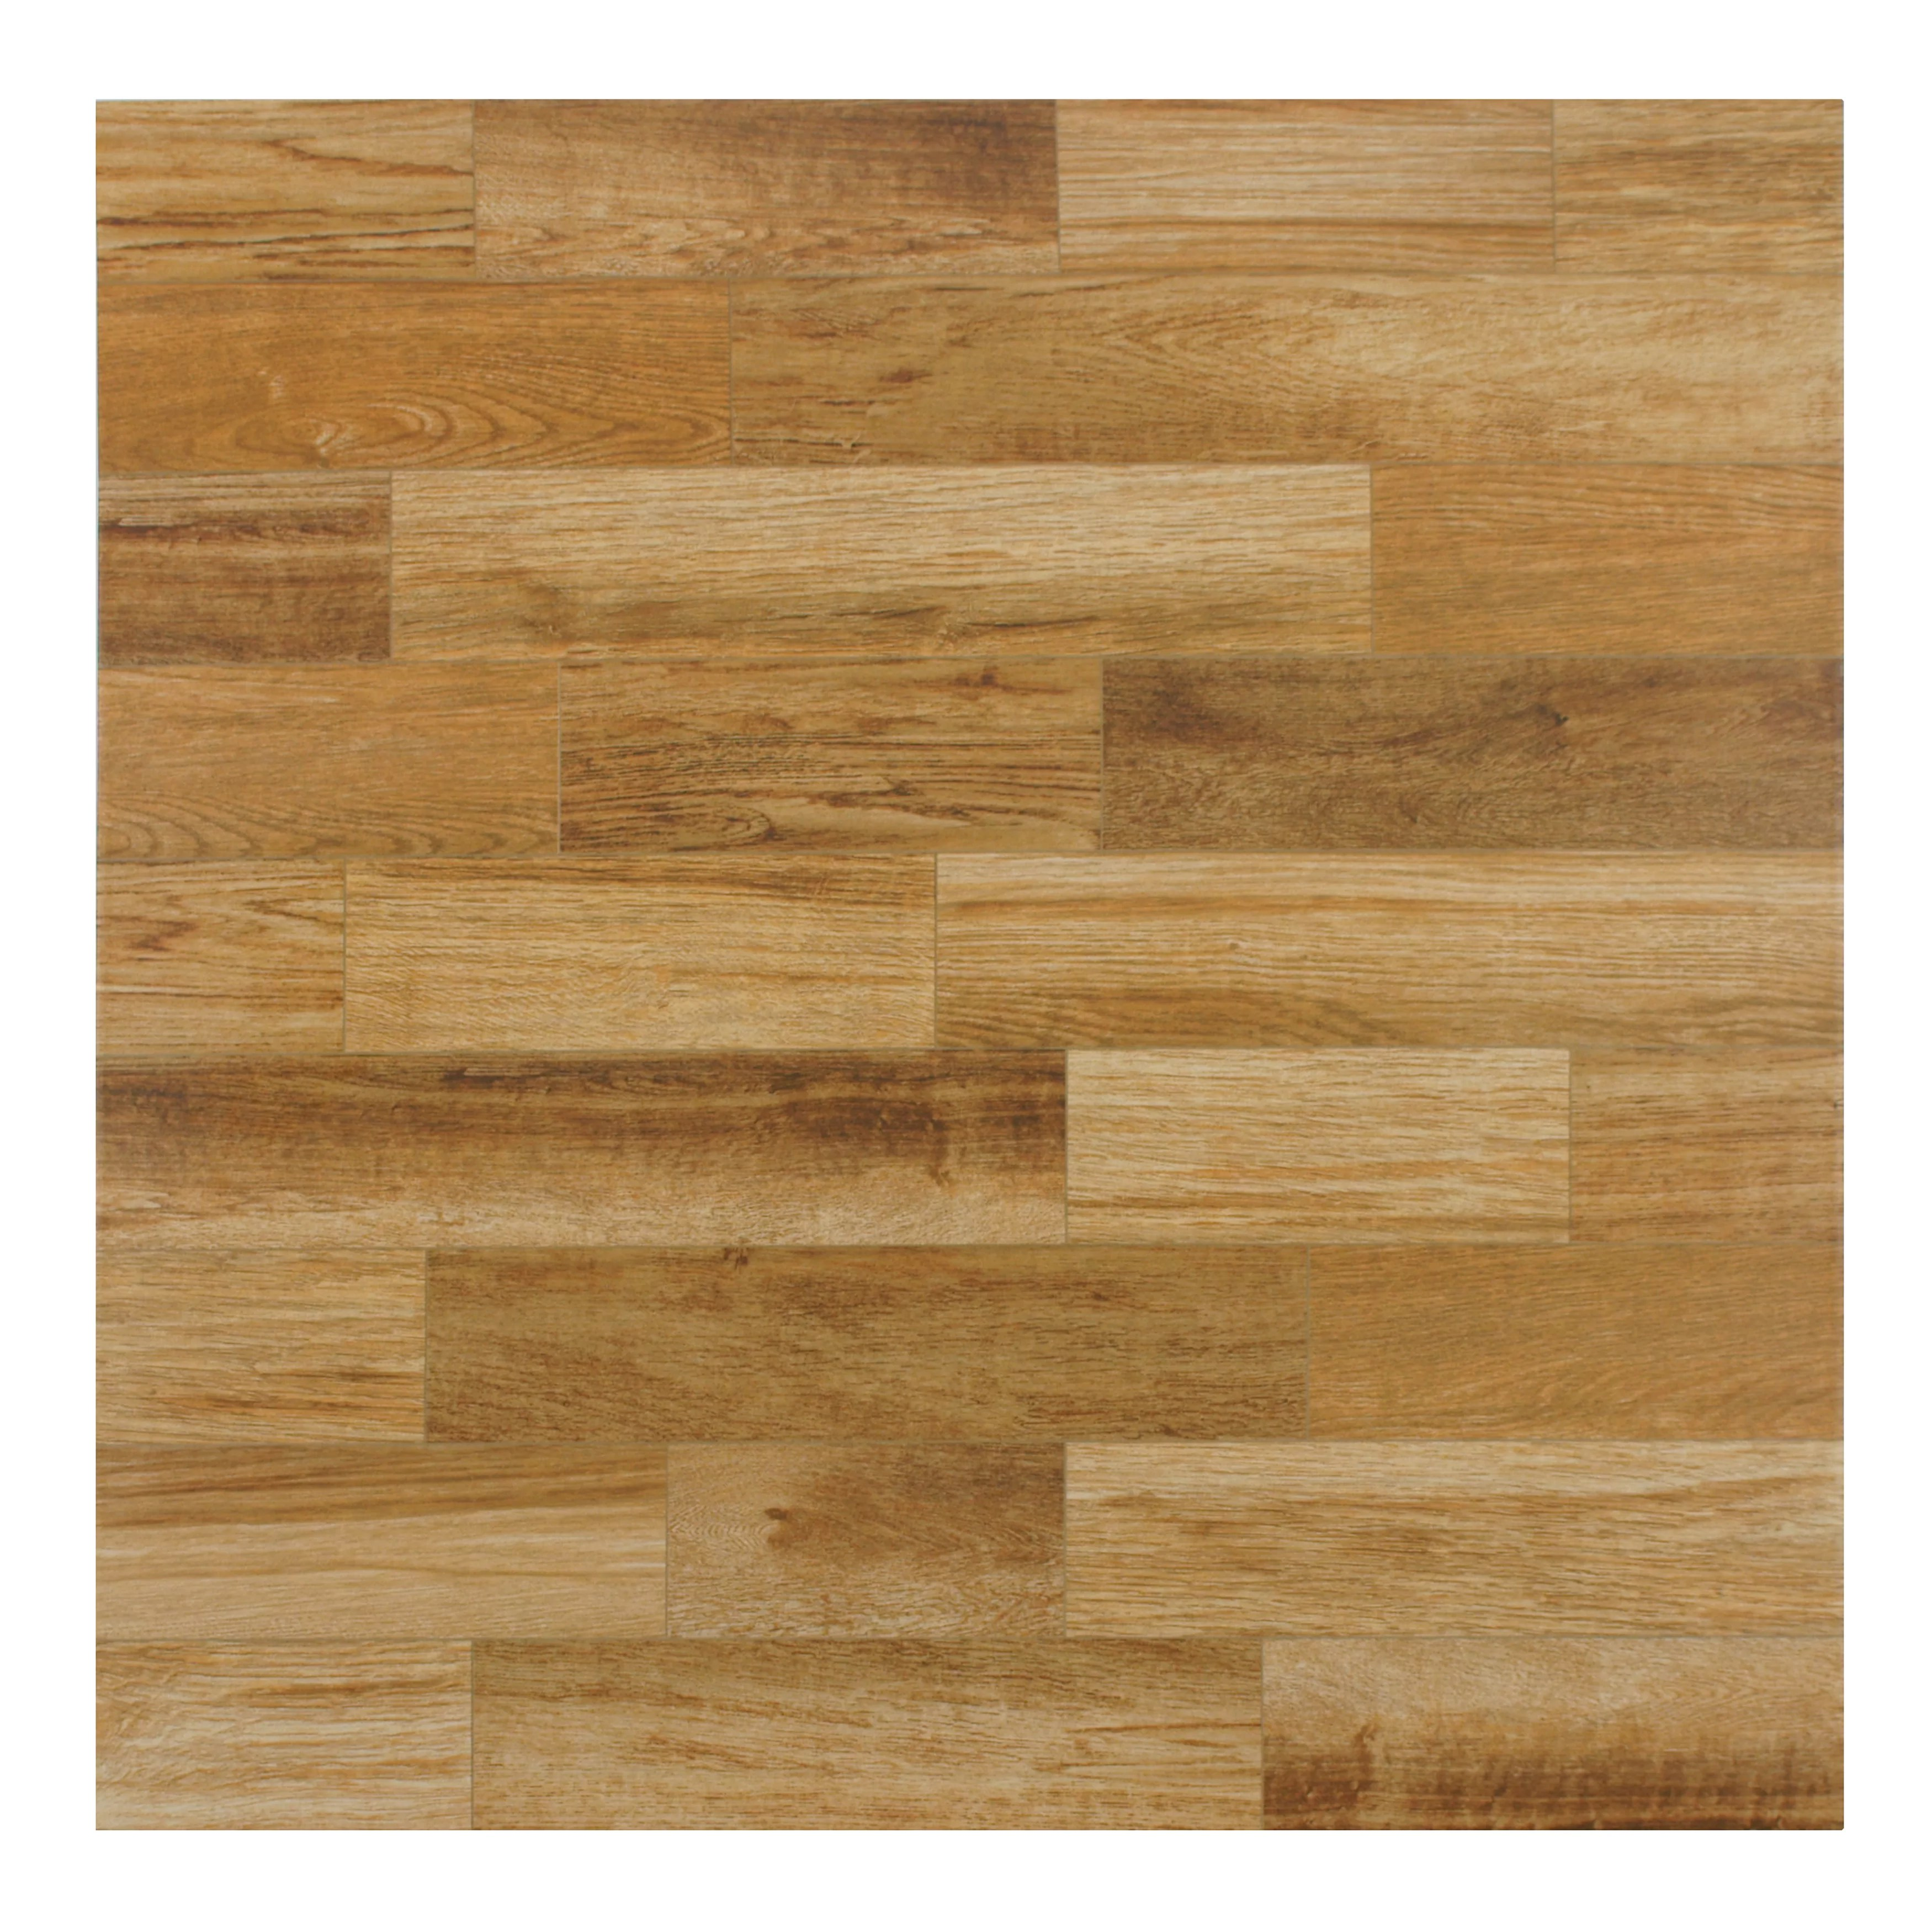 is there ceramic tile that looks like wood